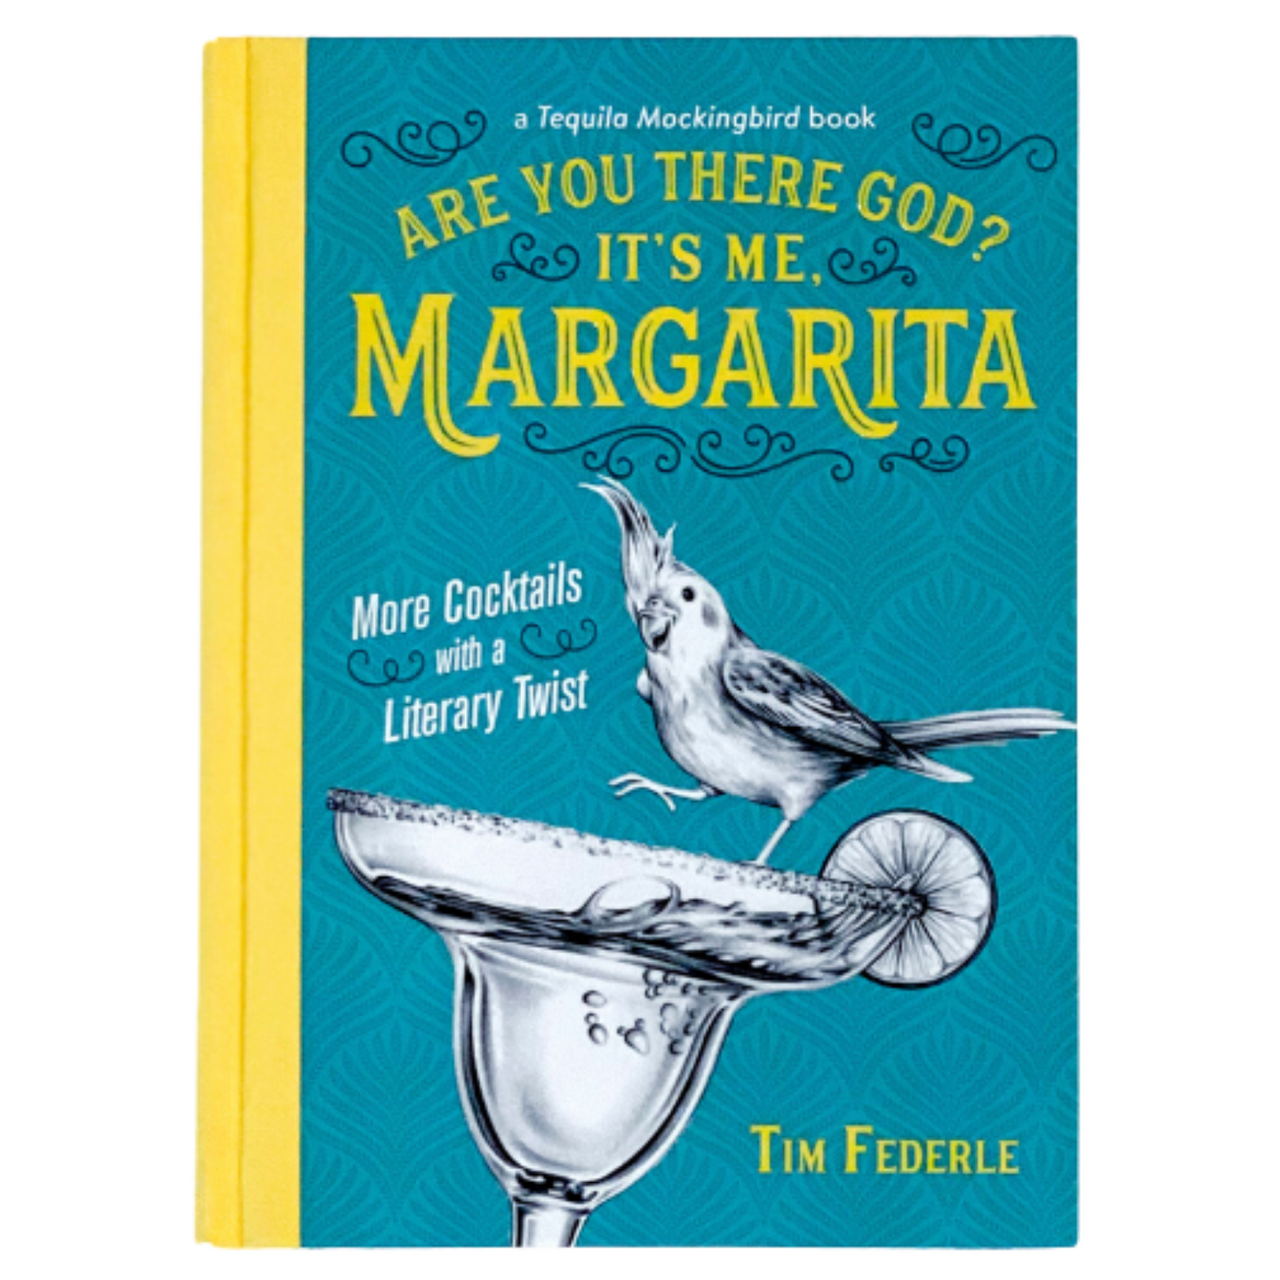 Are you there God? It's Me, Margarita.